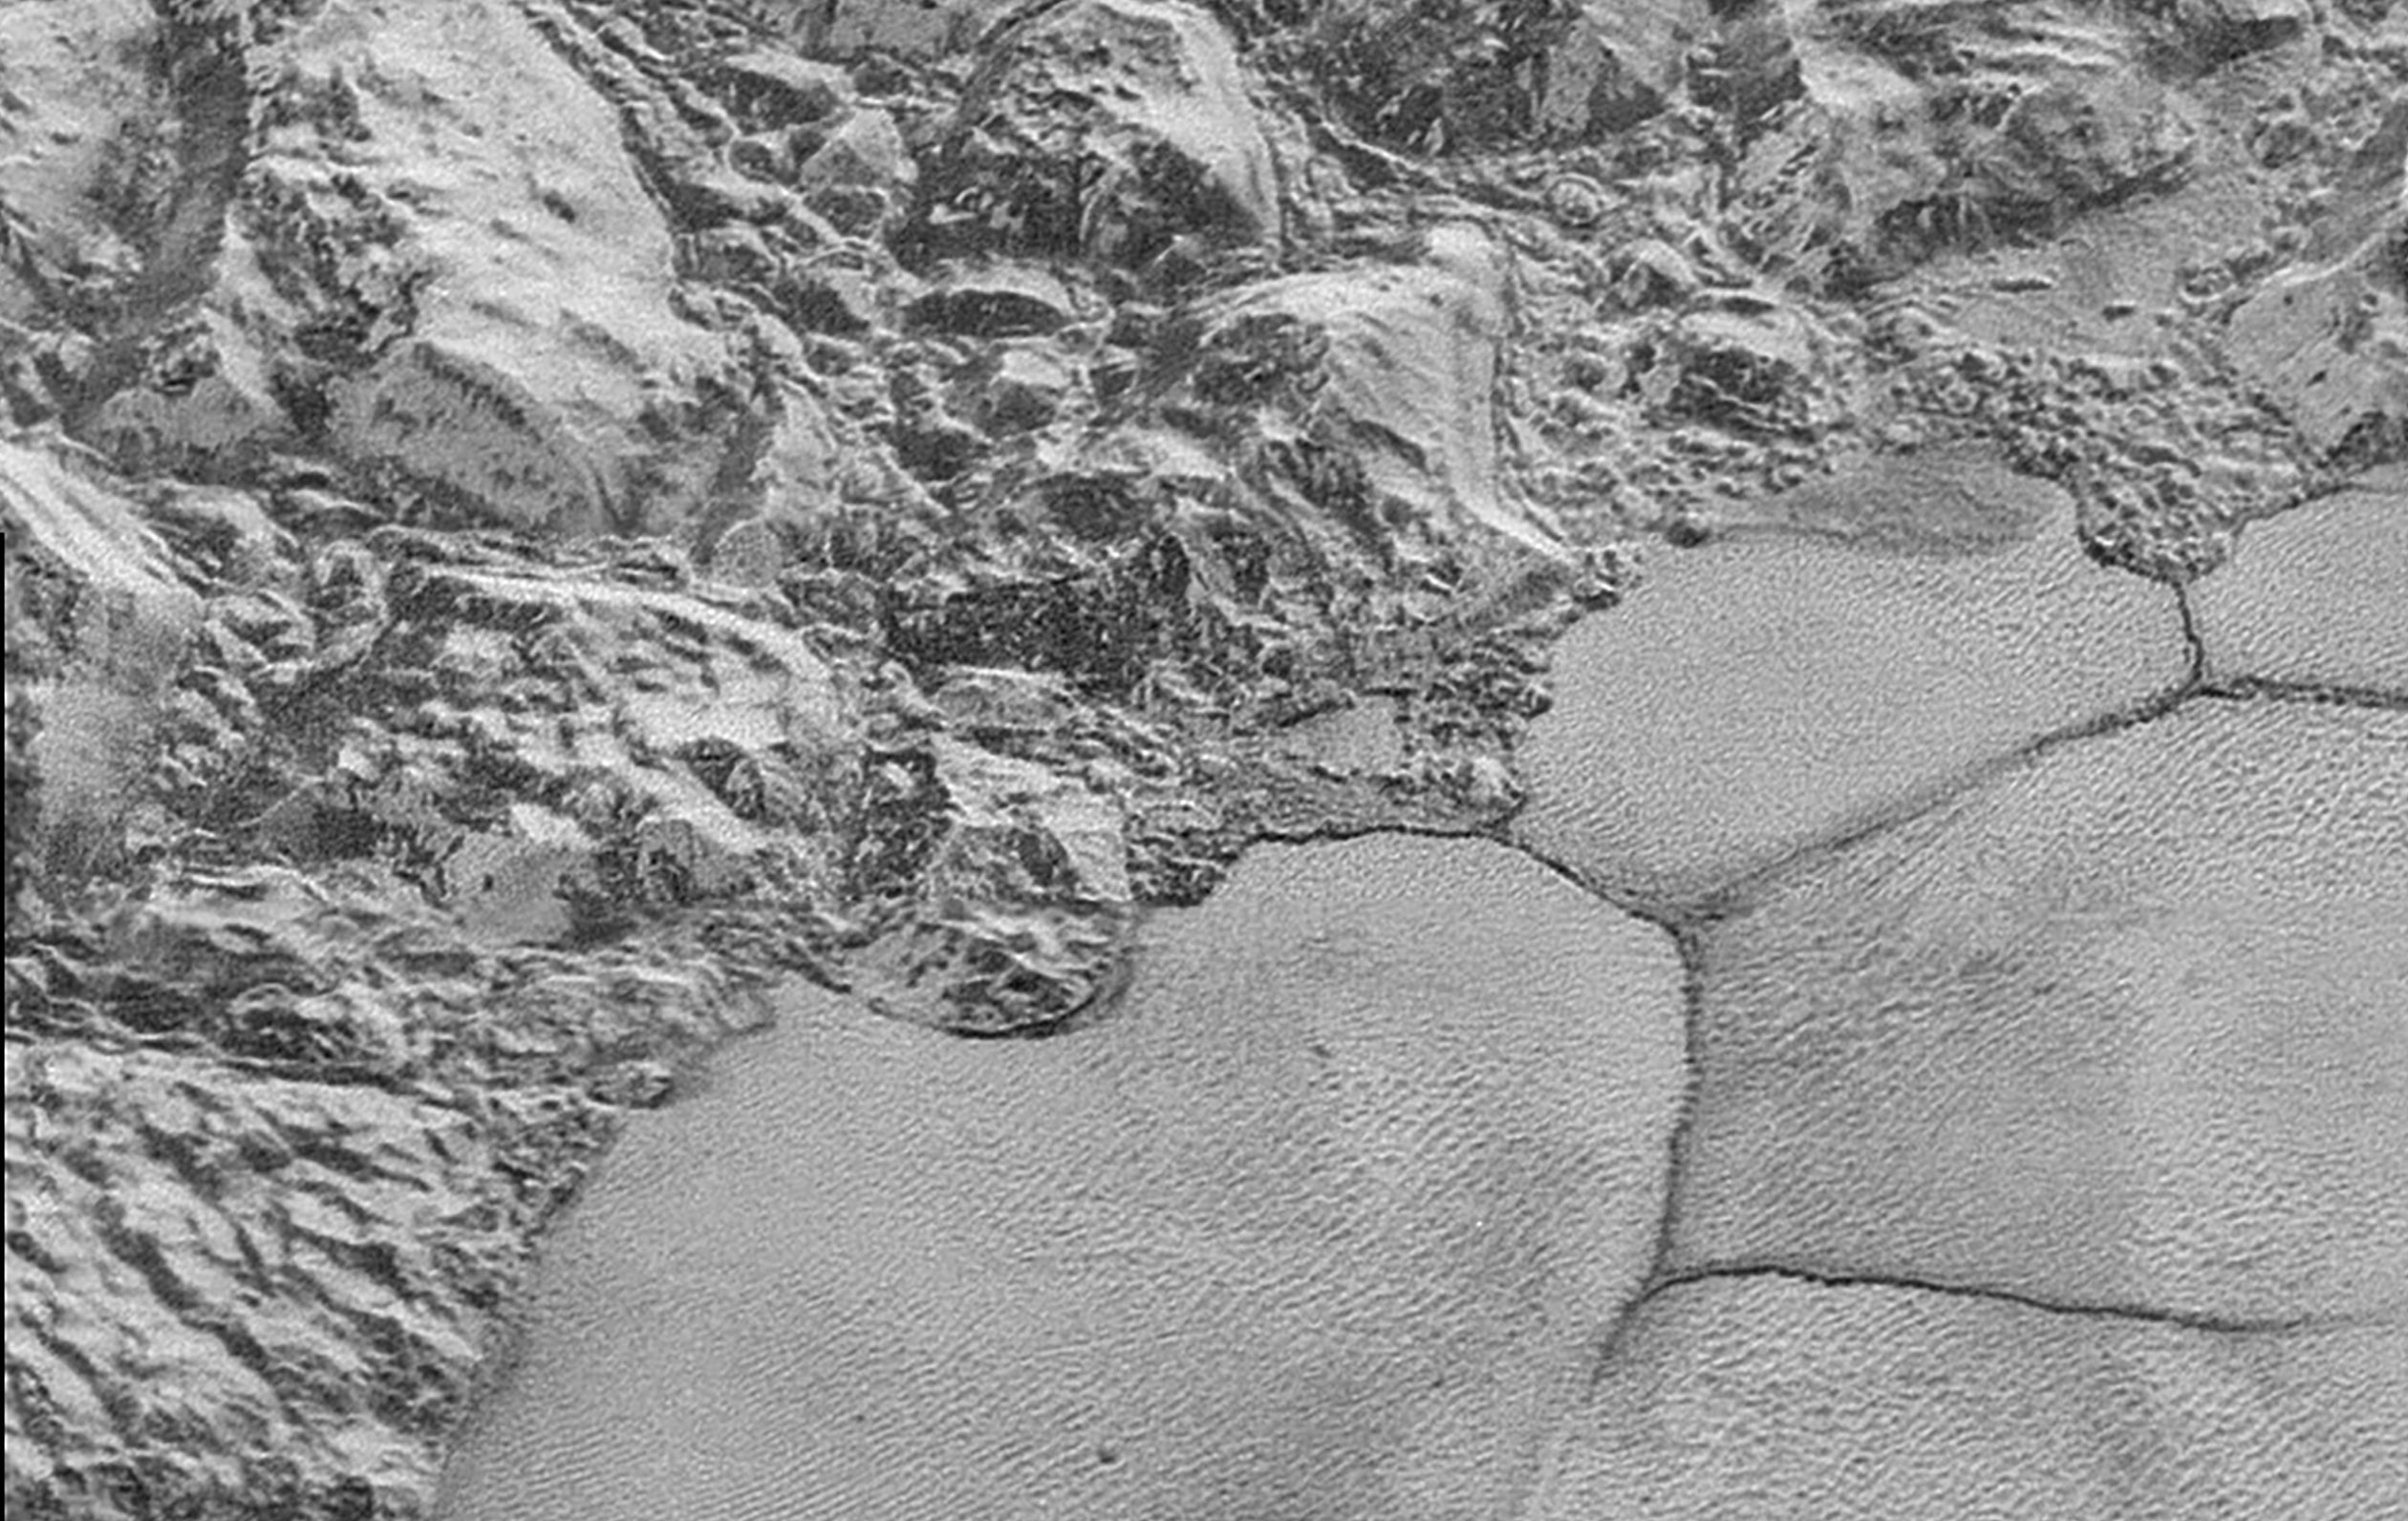 This Is the Best Look at Pluto's Surface We're Going to Get